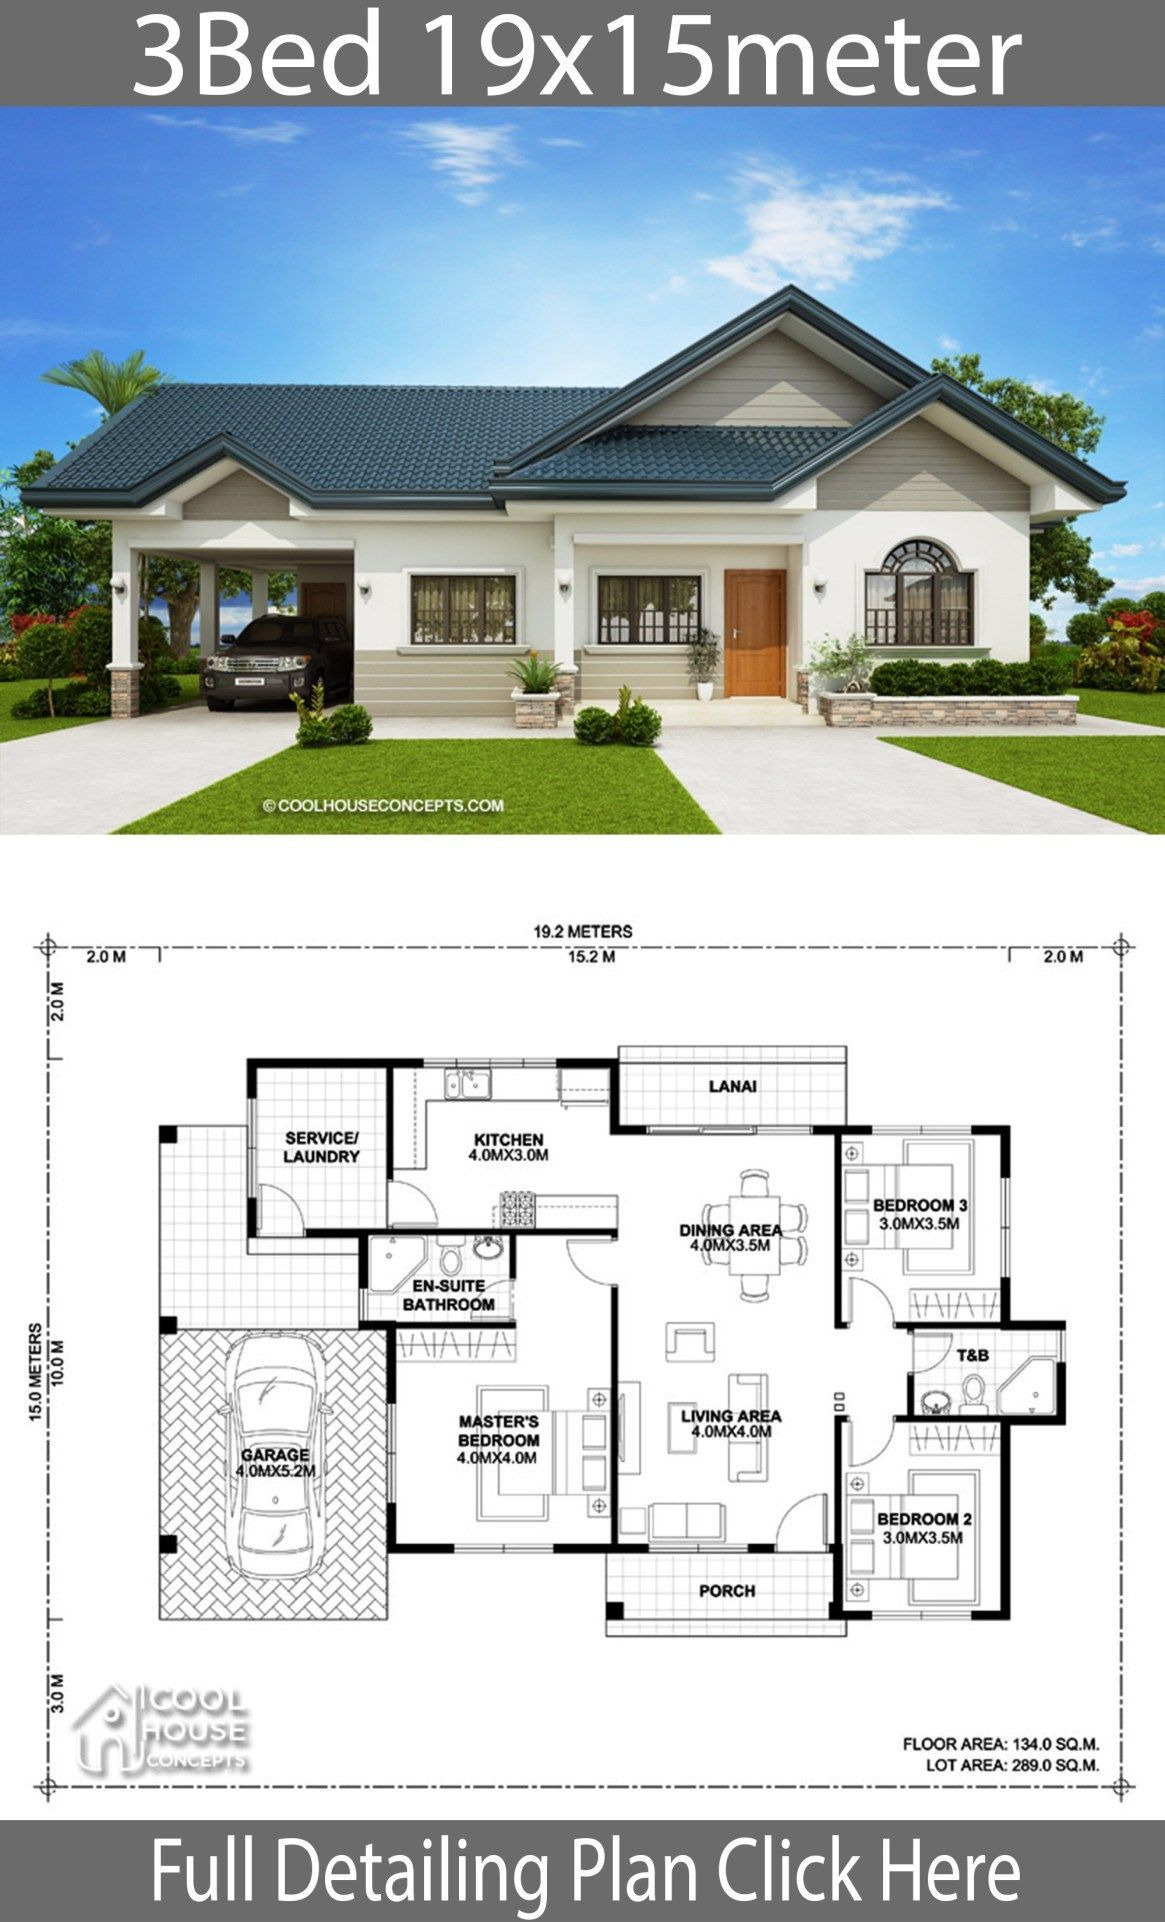 3 Concepts Of 3 Bedroom Bungalow House In 2021 Bungalow House Design Modern Bungalow House House Construction Plan